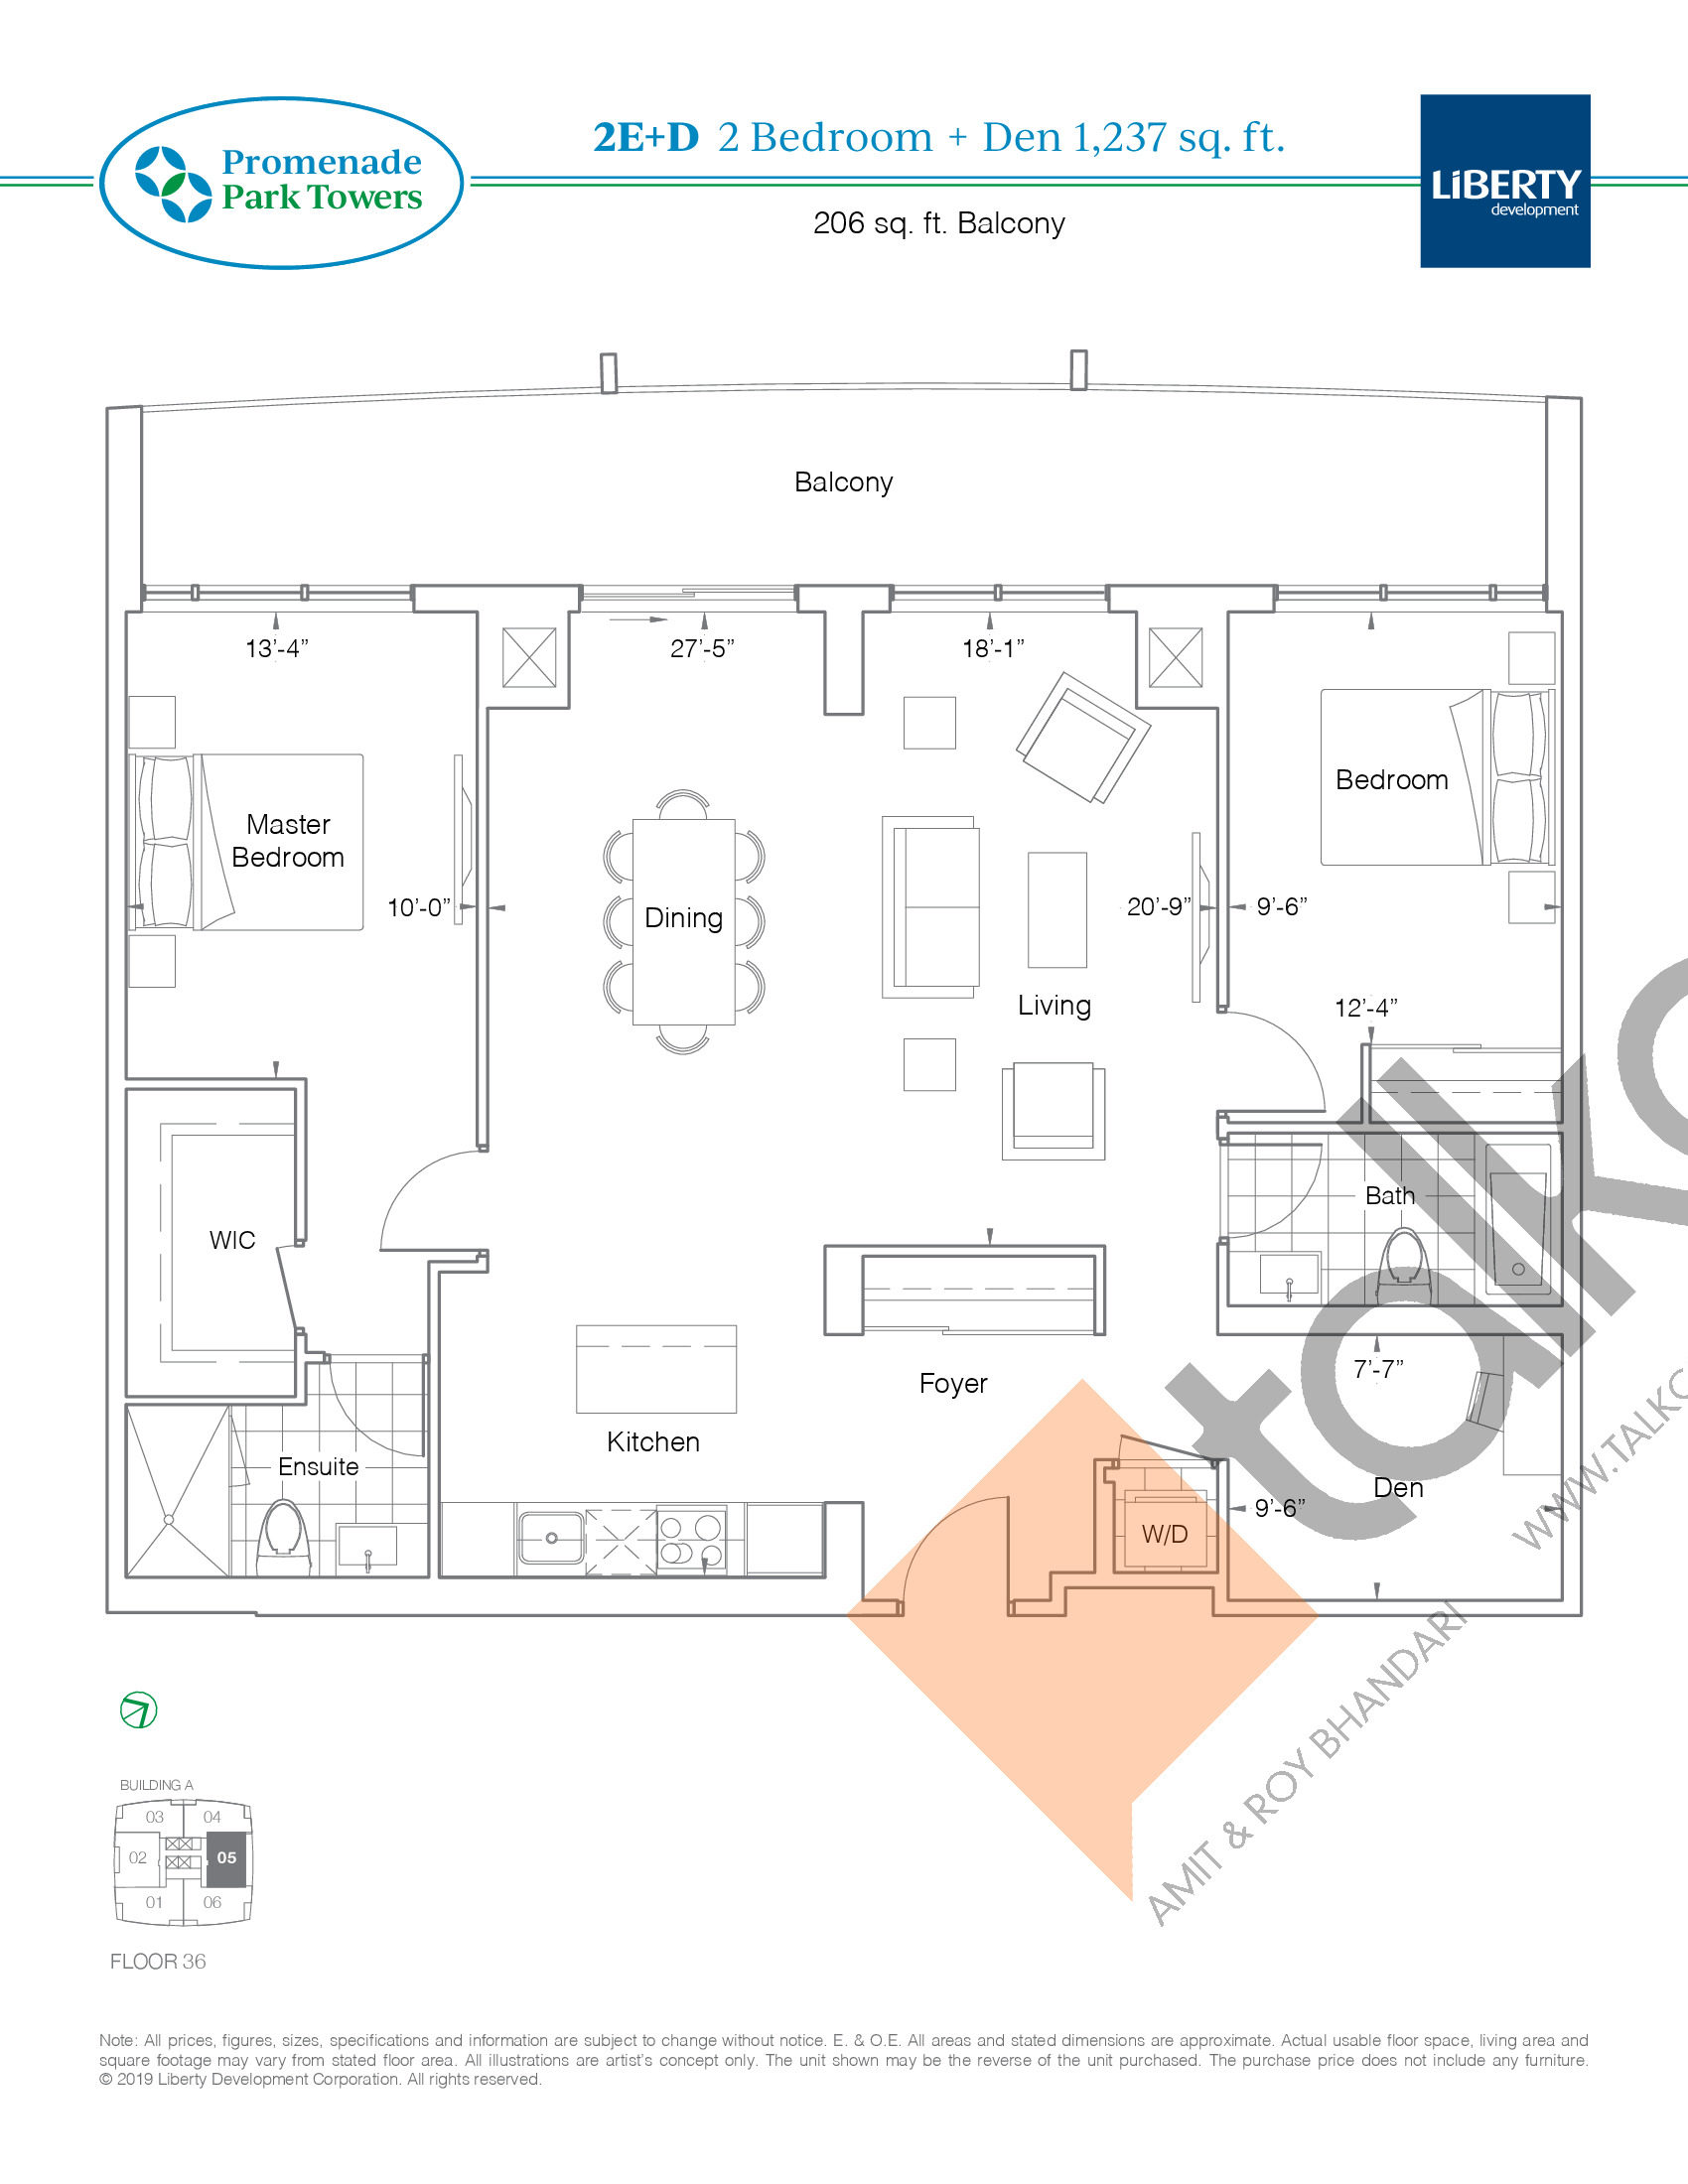 2E+D Floor Plan at Promenade Park Towers Condos - 1237 sq.ft